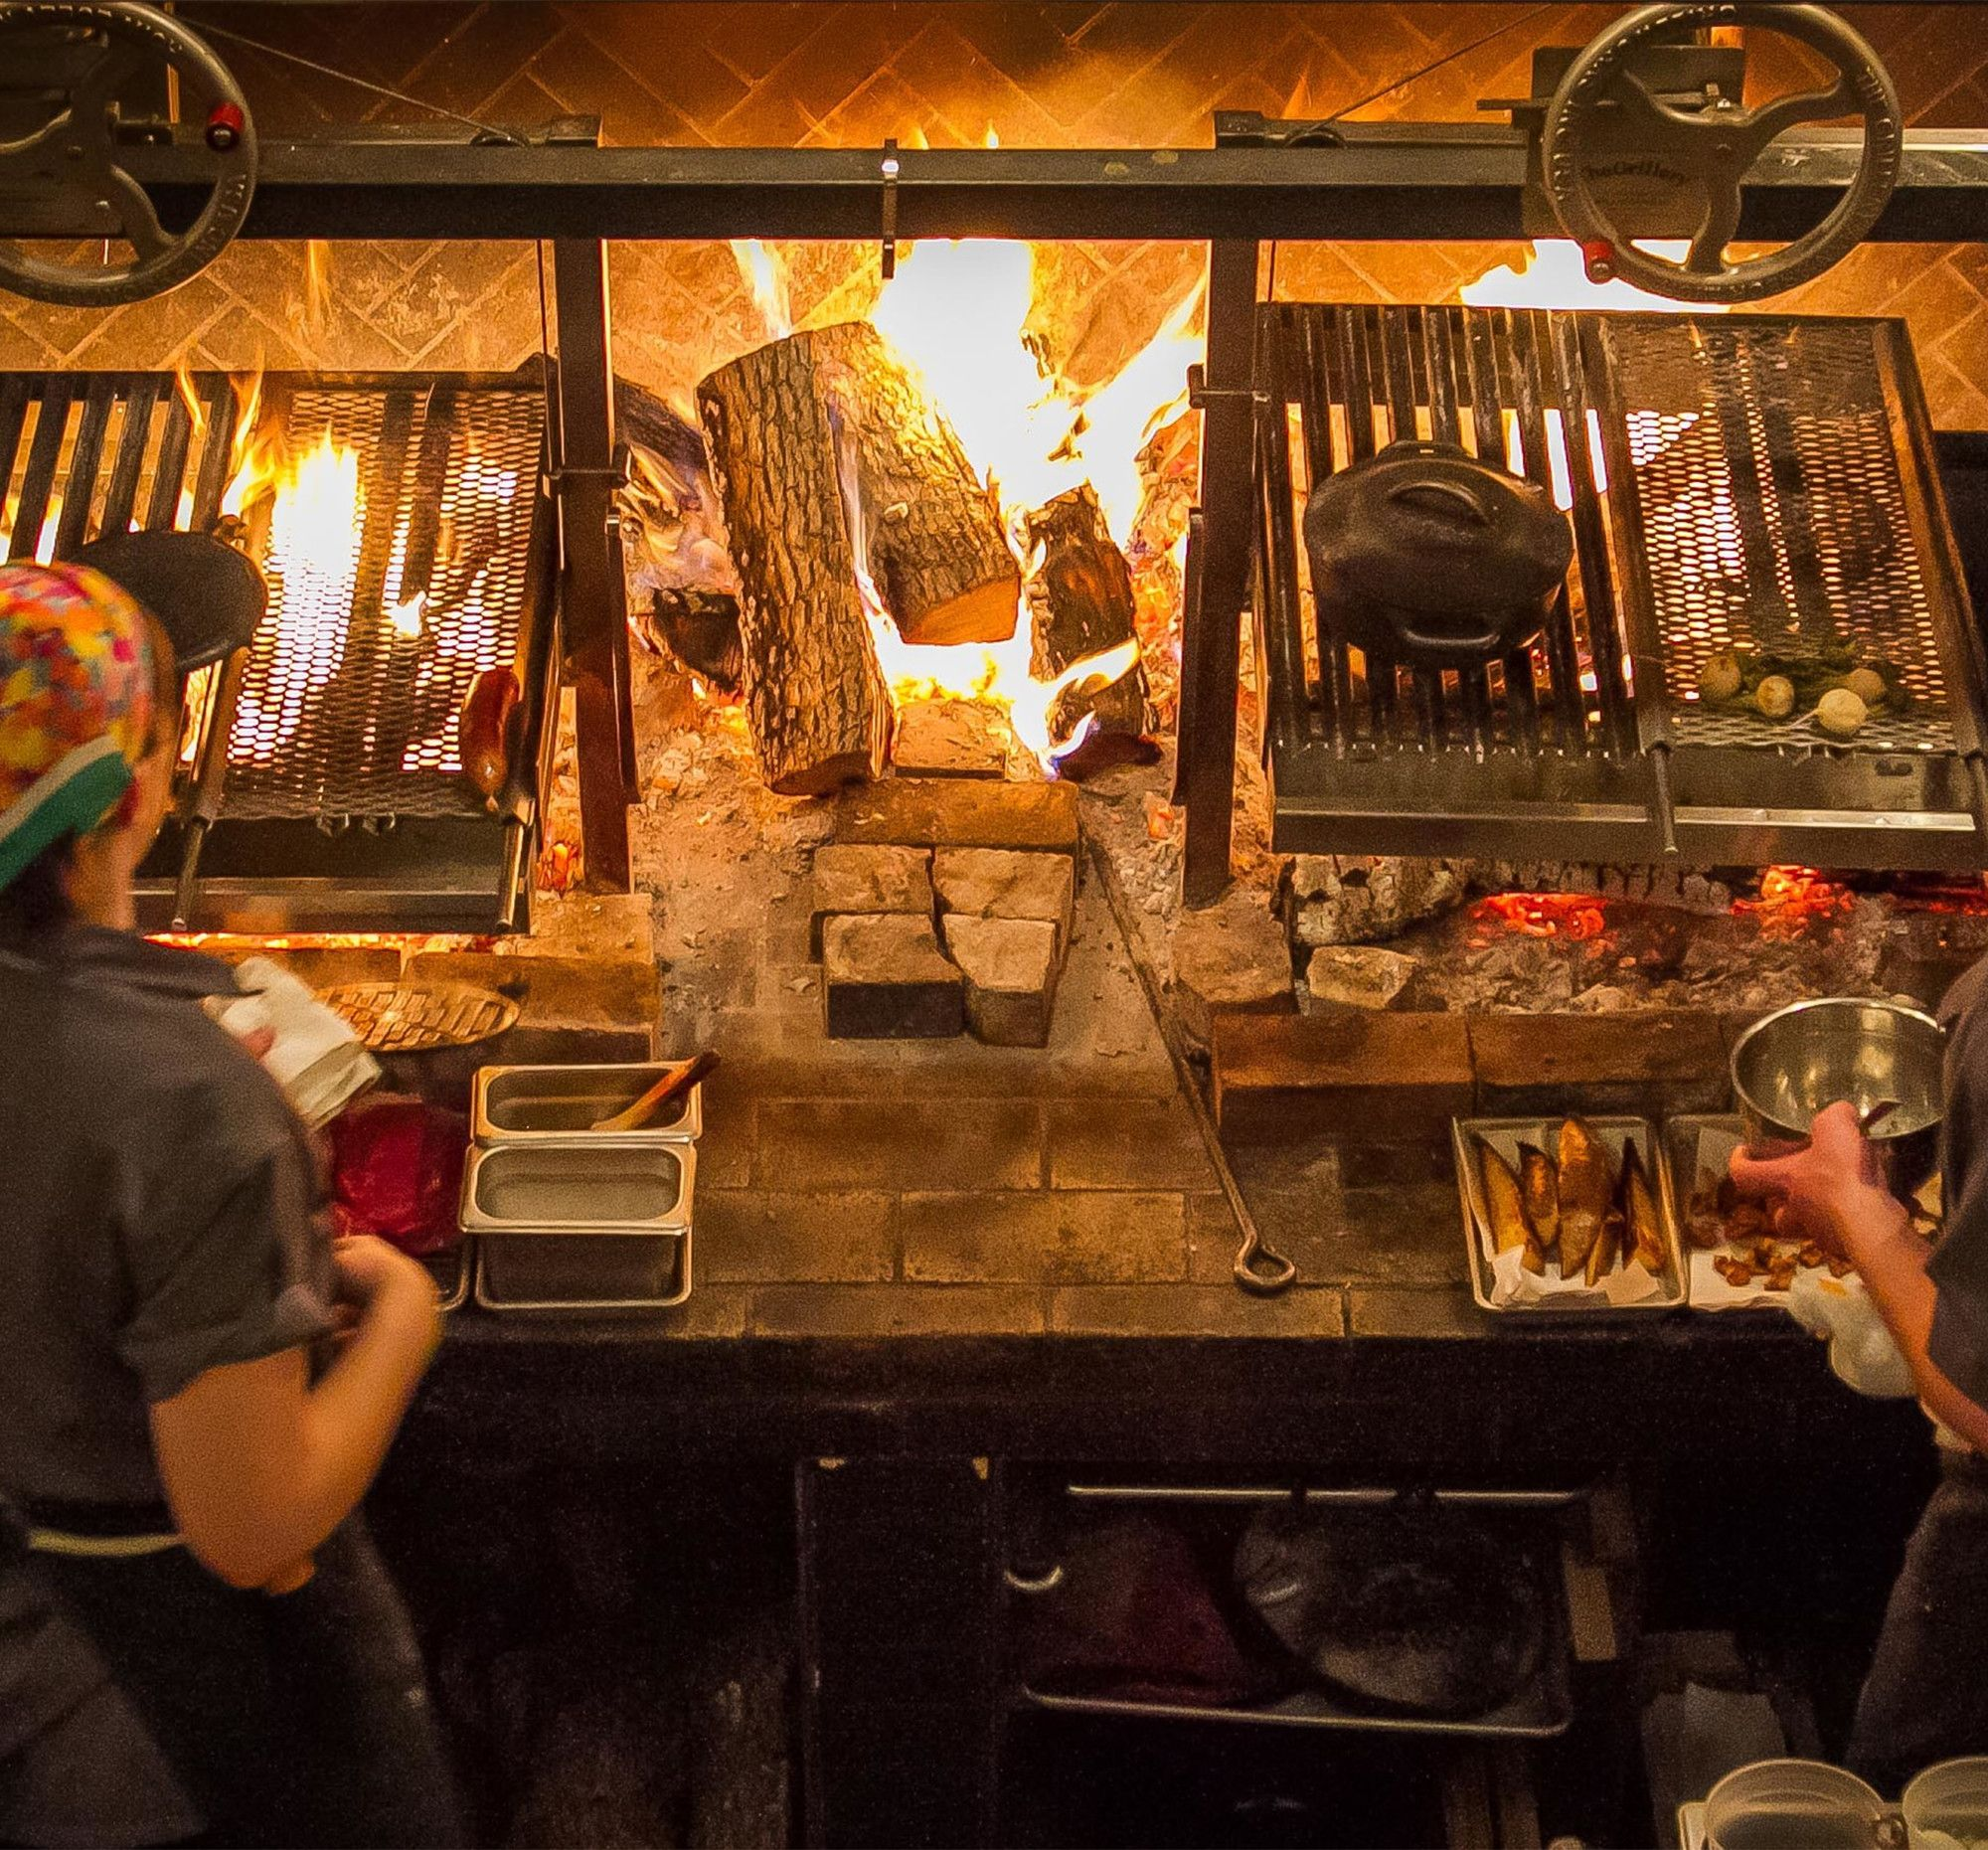 Open Kitchen Restaurant: The Cult-Favorite Wood-Fired Grills Taking The Restaurant